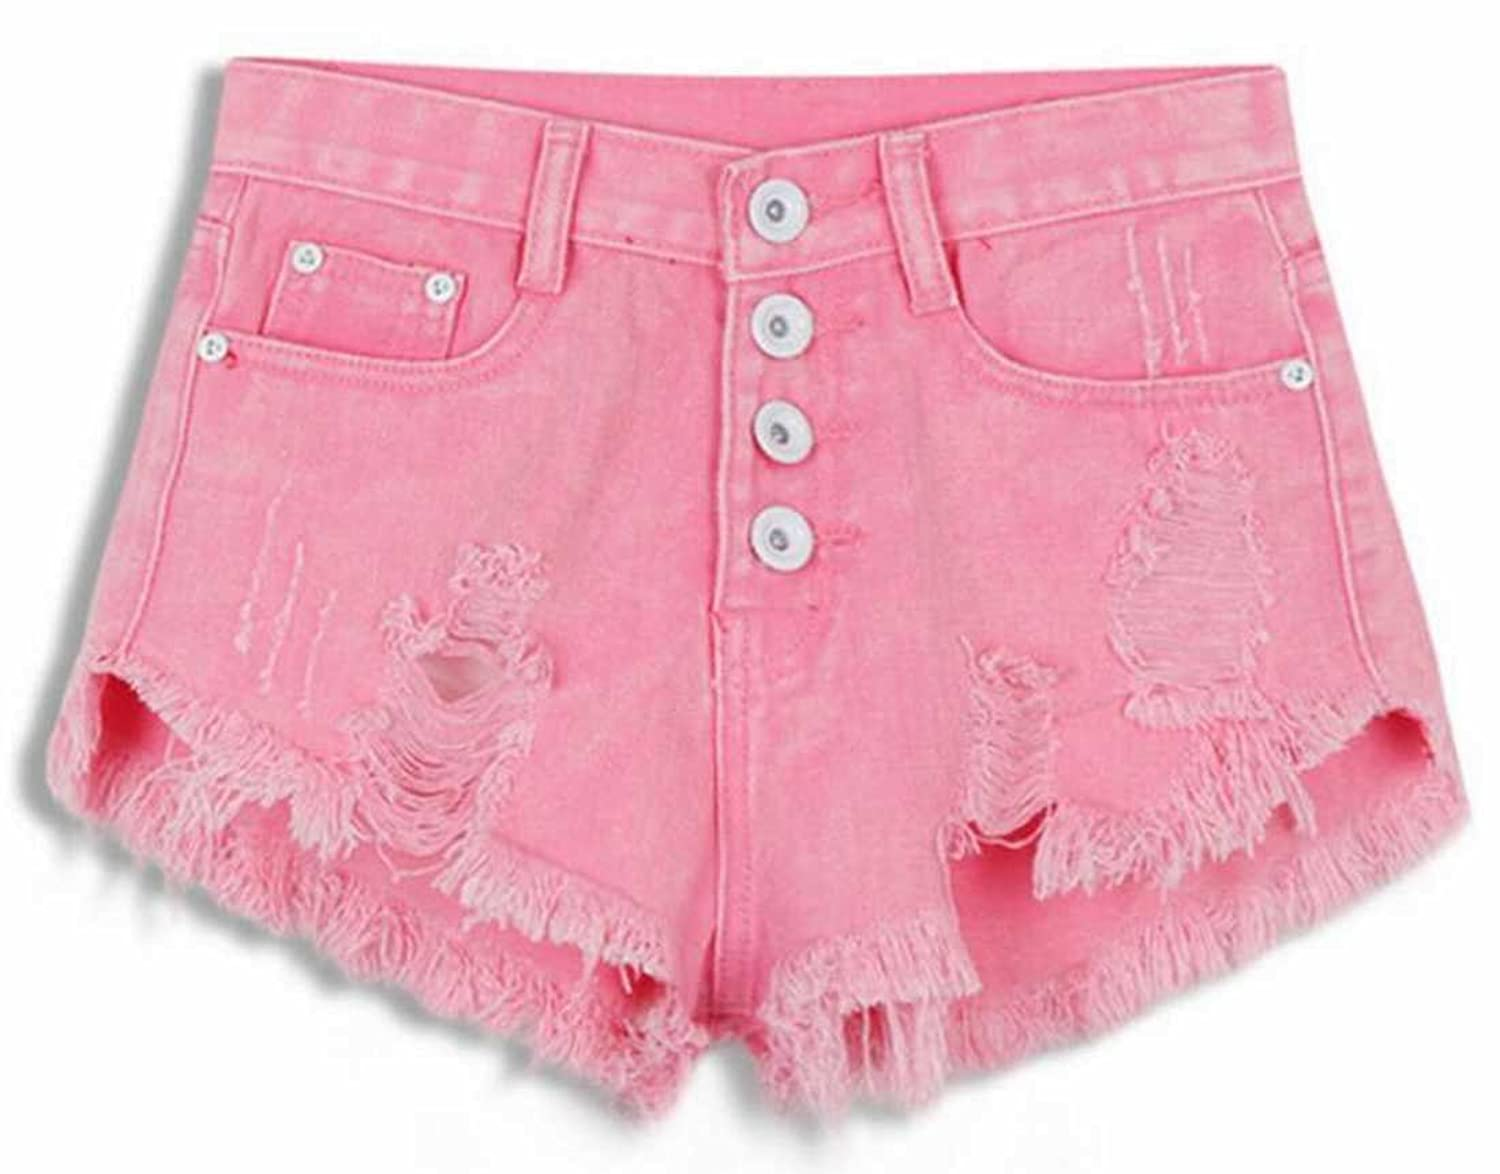 YUNY Women's High Waist Washed Hole Short Denim Shorts